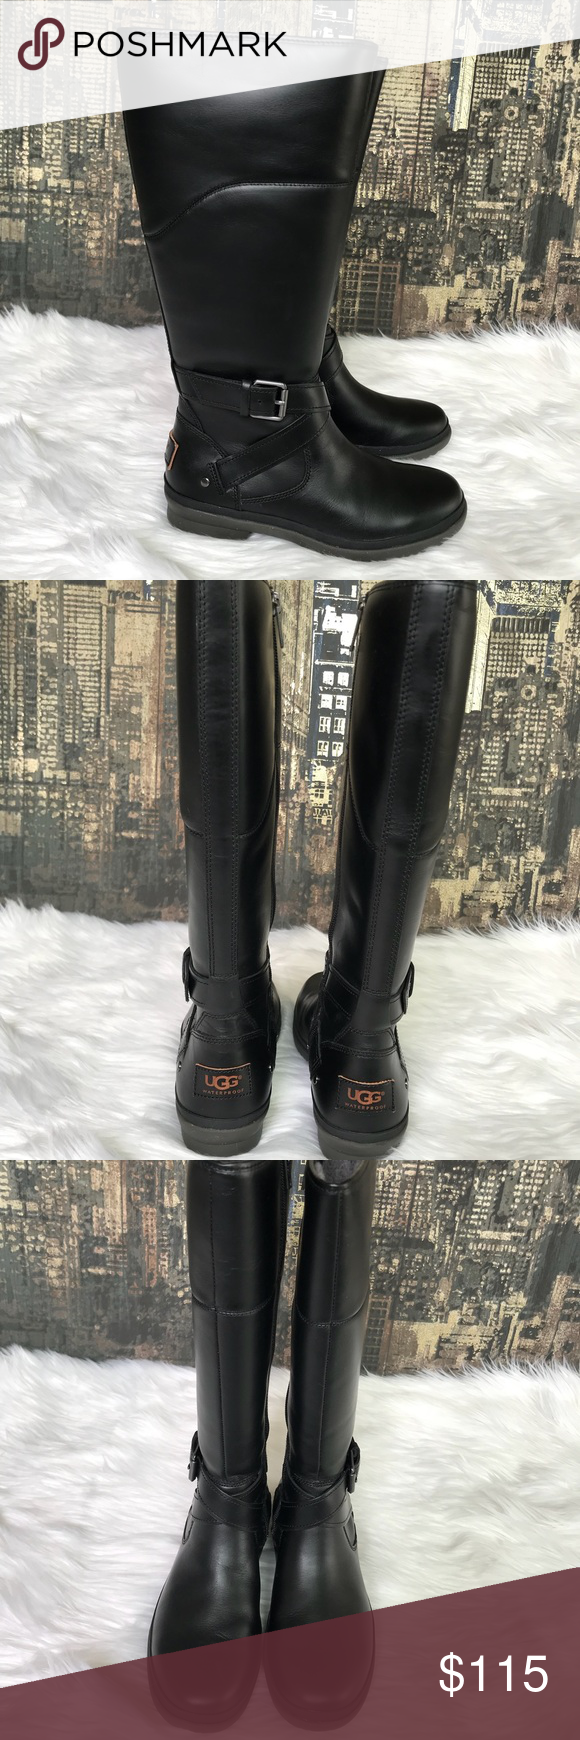 301760b110c ✨🆕UGG Evanna Leather Riding Boots in Black✨👢 ✨🆕UGG Evanna ...